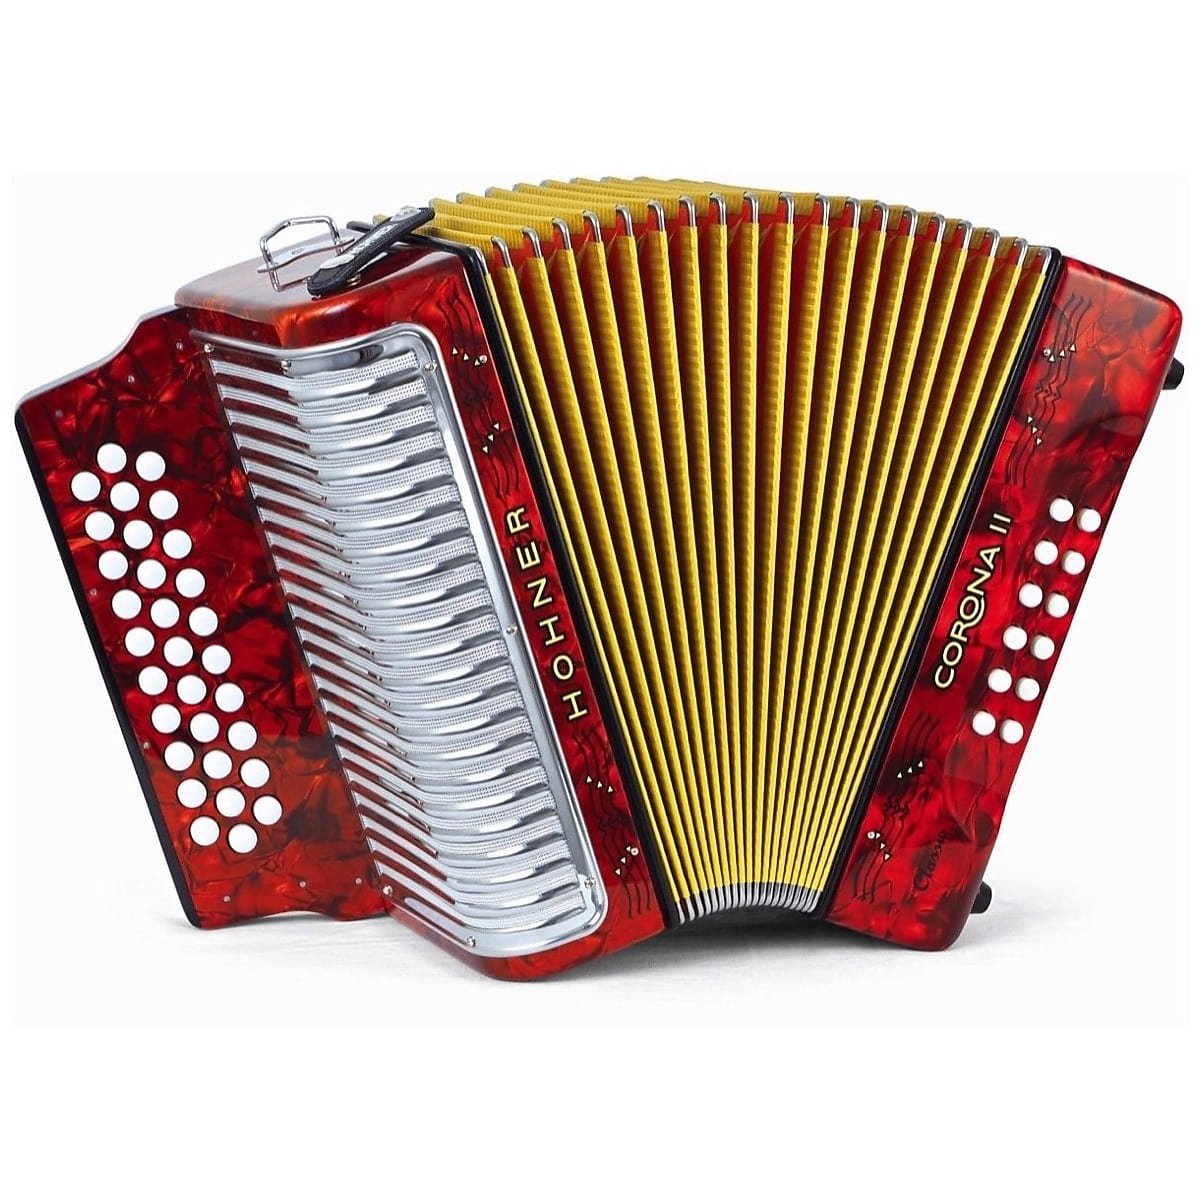 HOHNER 3523GR BUTTON ACCORDION CORONA II CLASSIC SOL WITH GIG BAG STRAPS RED